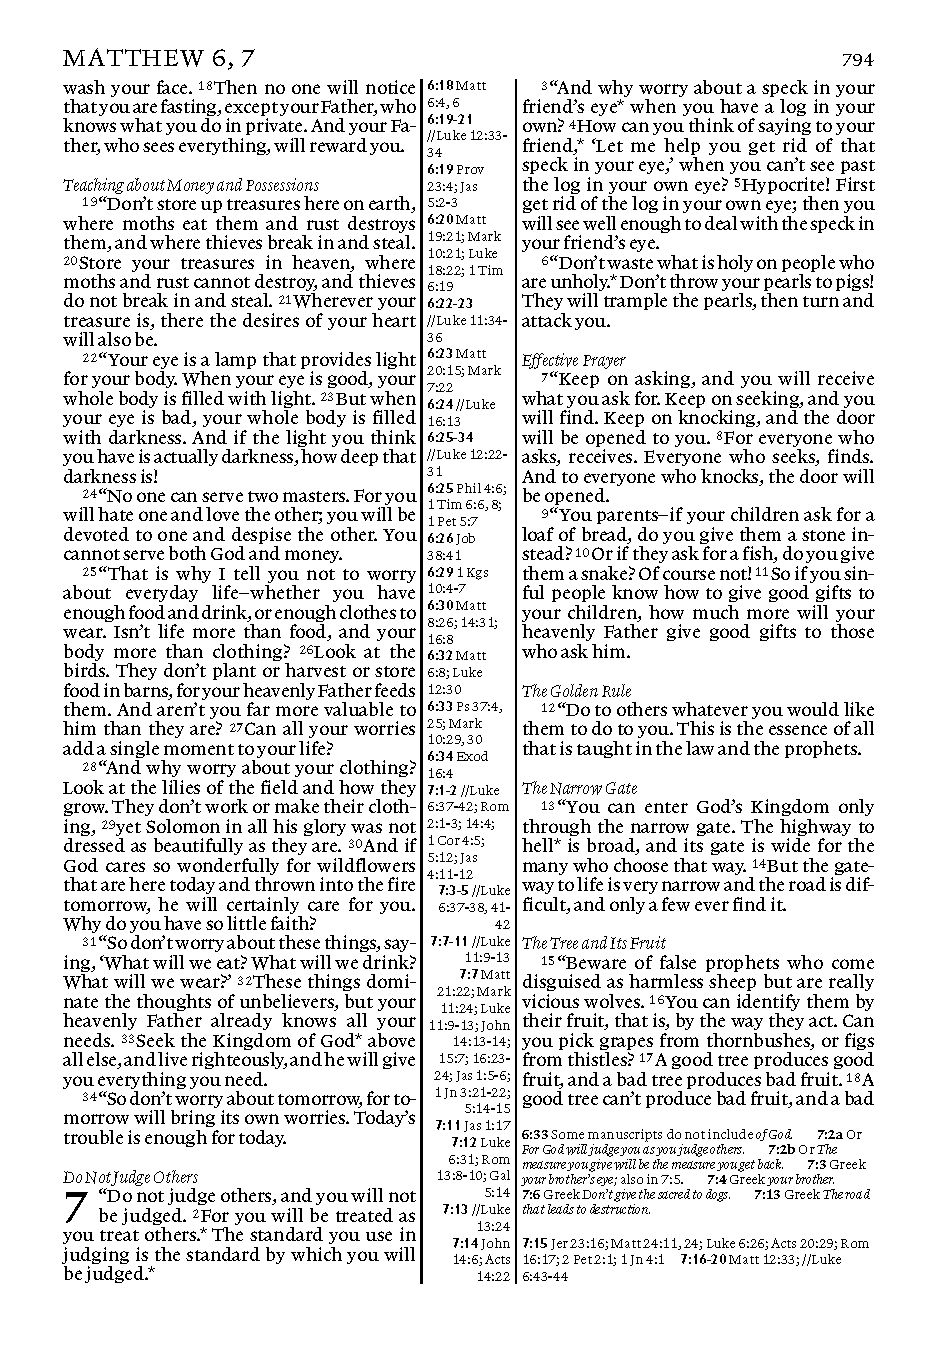 bible full text